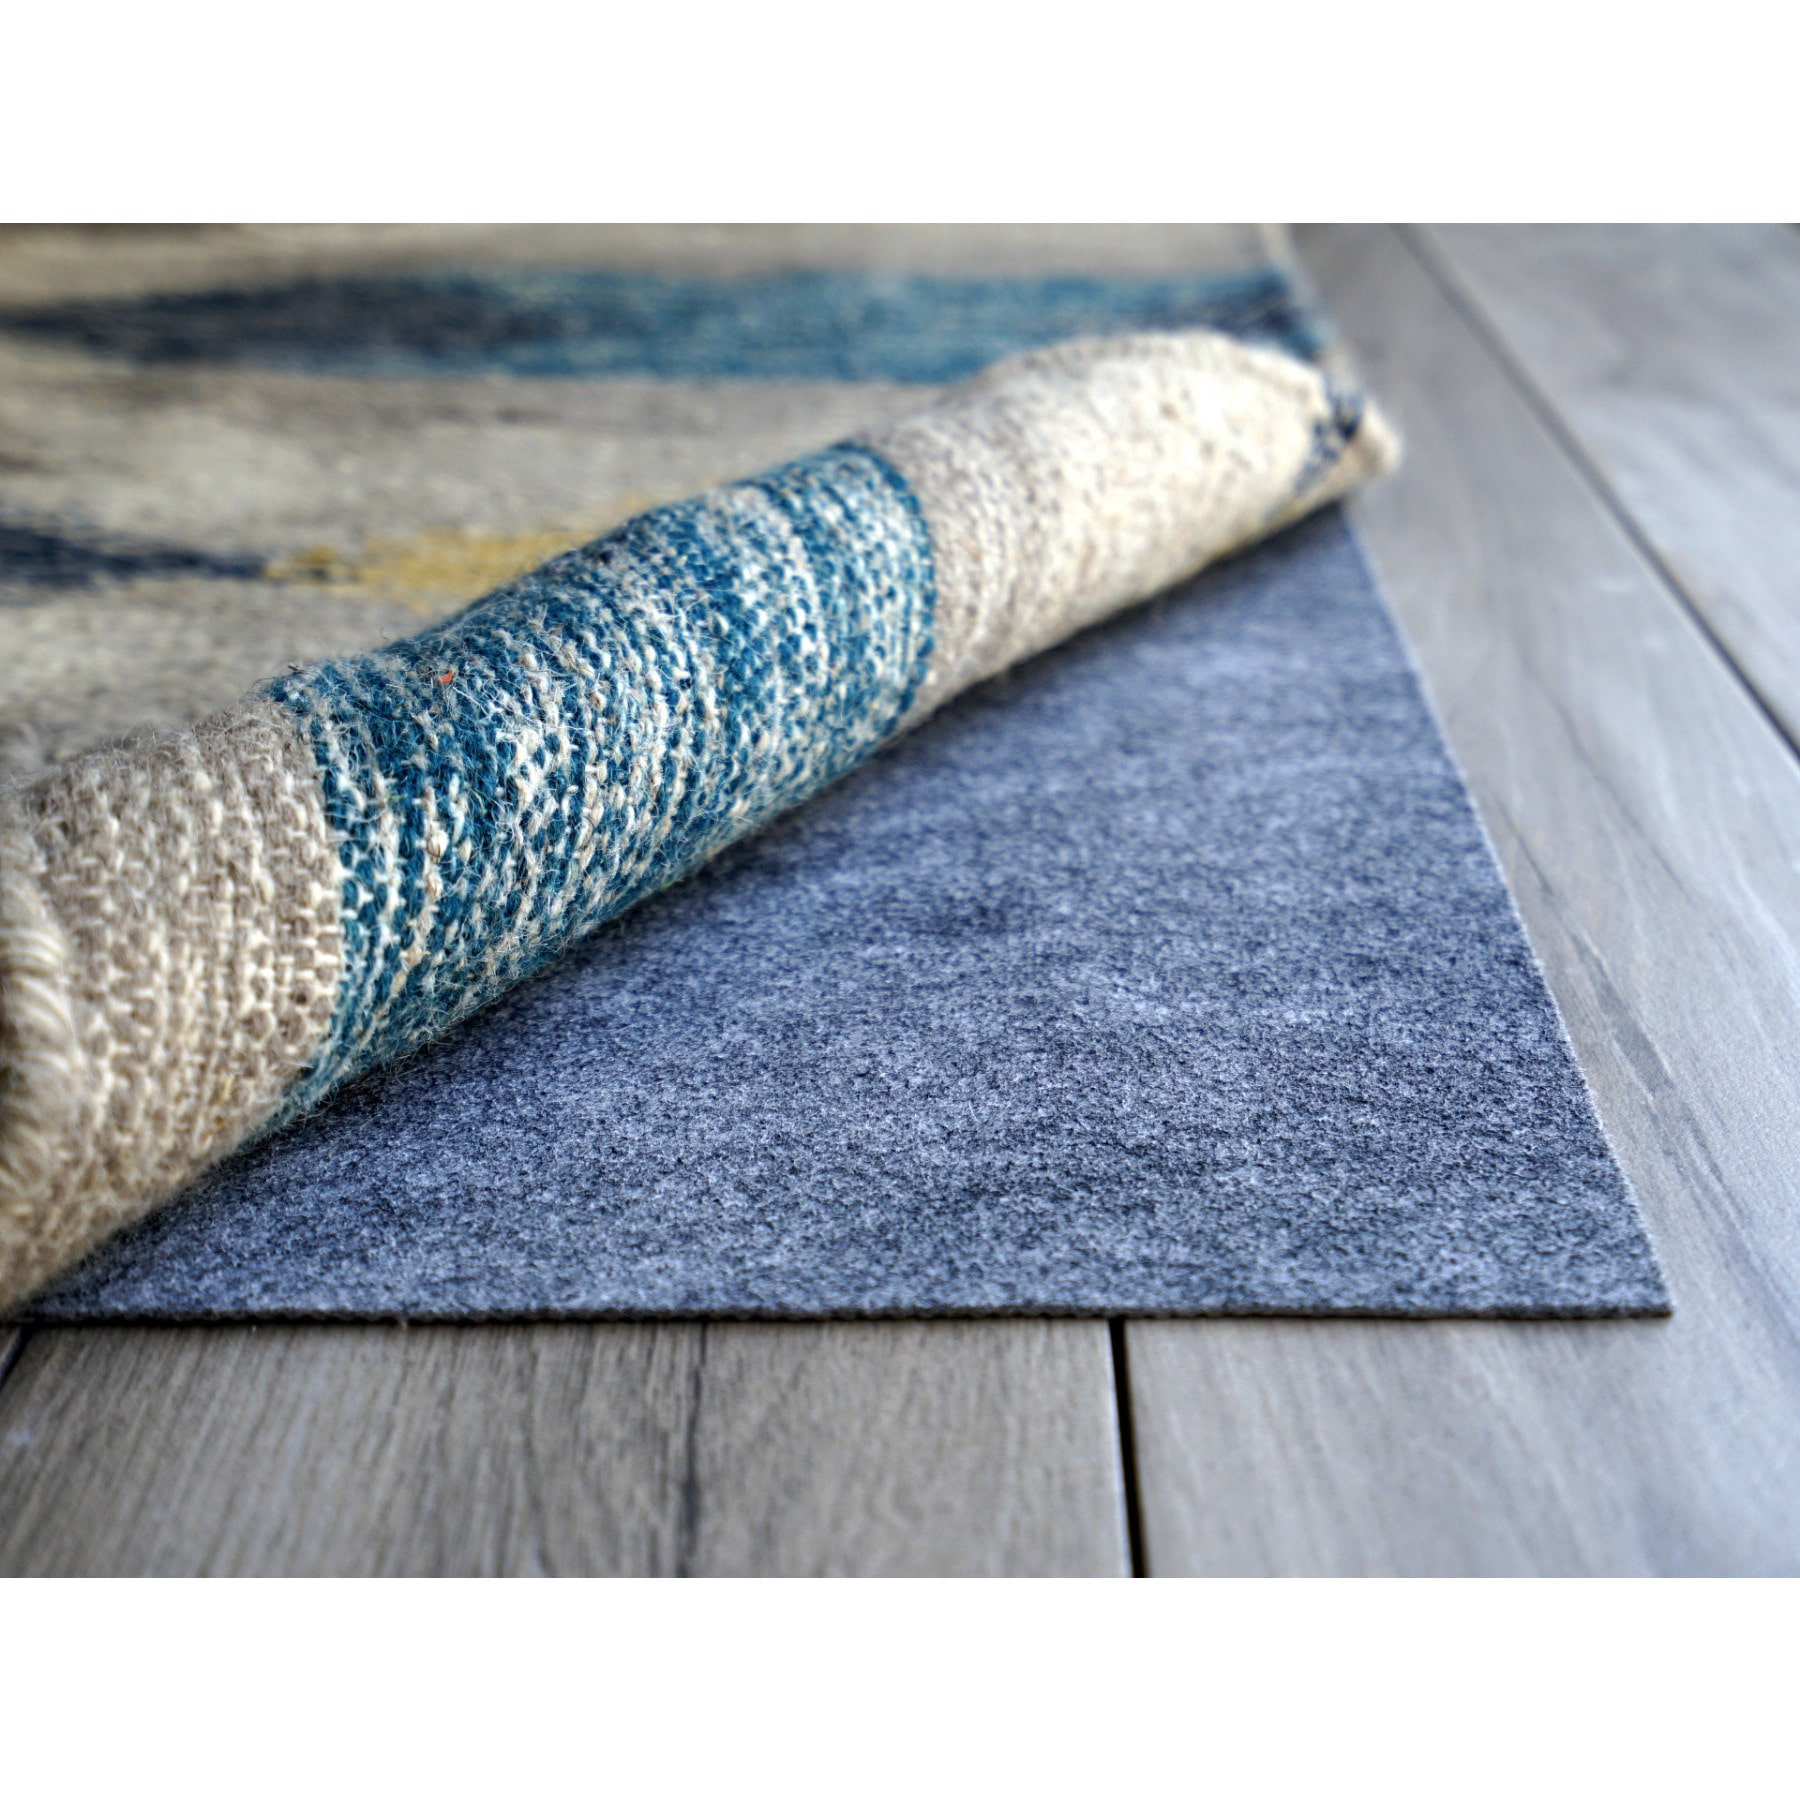 Rug Pad USA AnchorPro Low Profile Non-slip Felt & Rubber Rug Pad (4' x 8') by Overstock